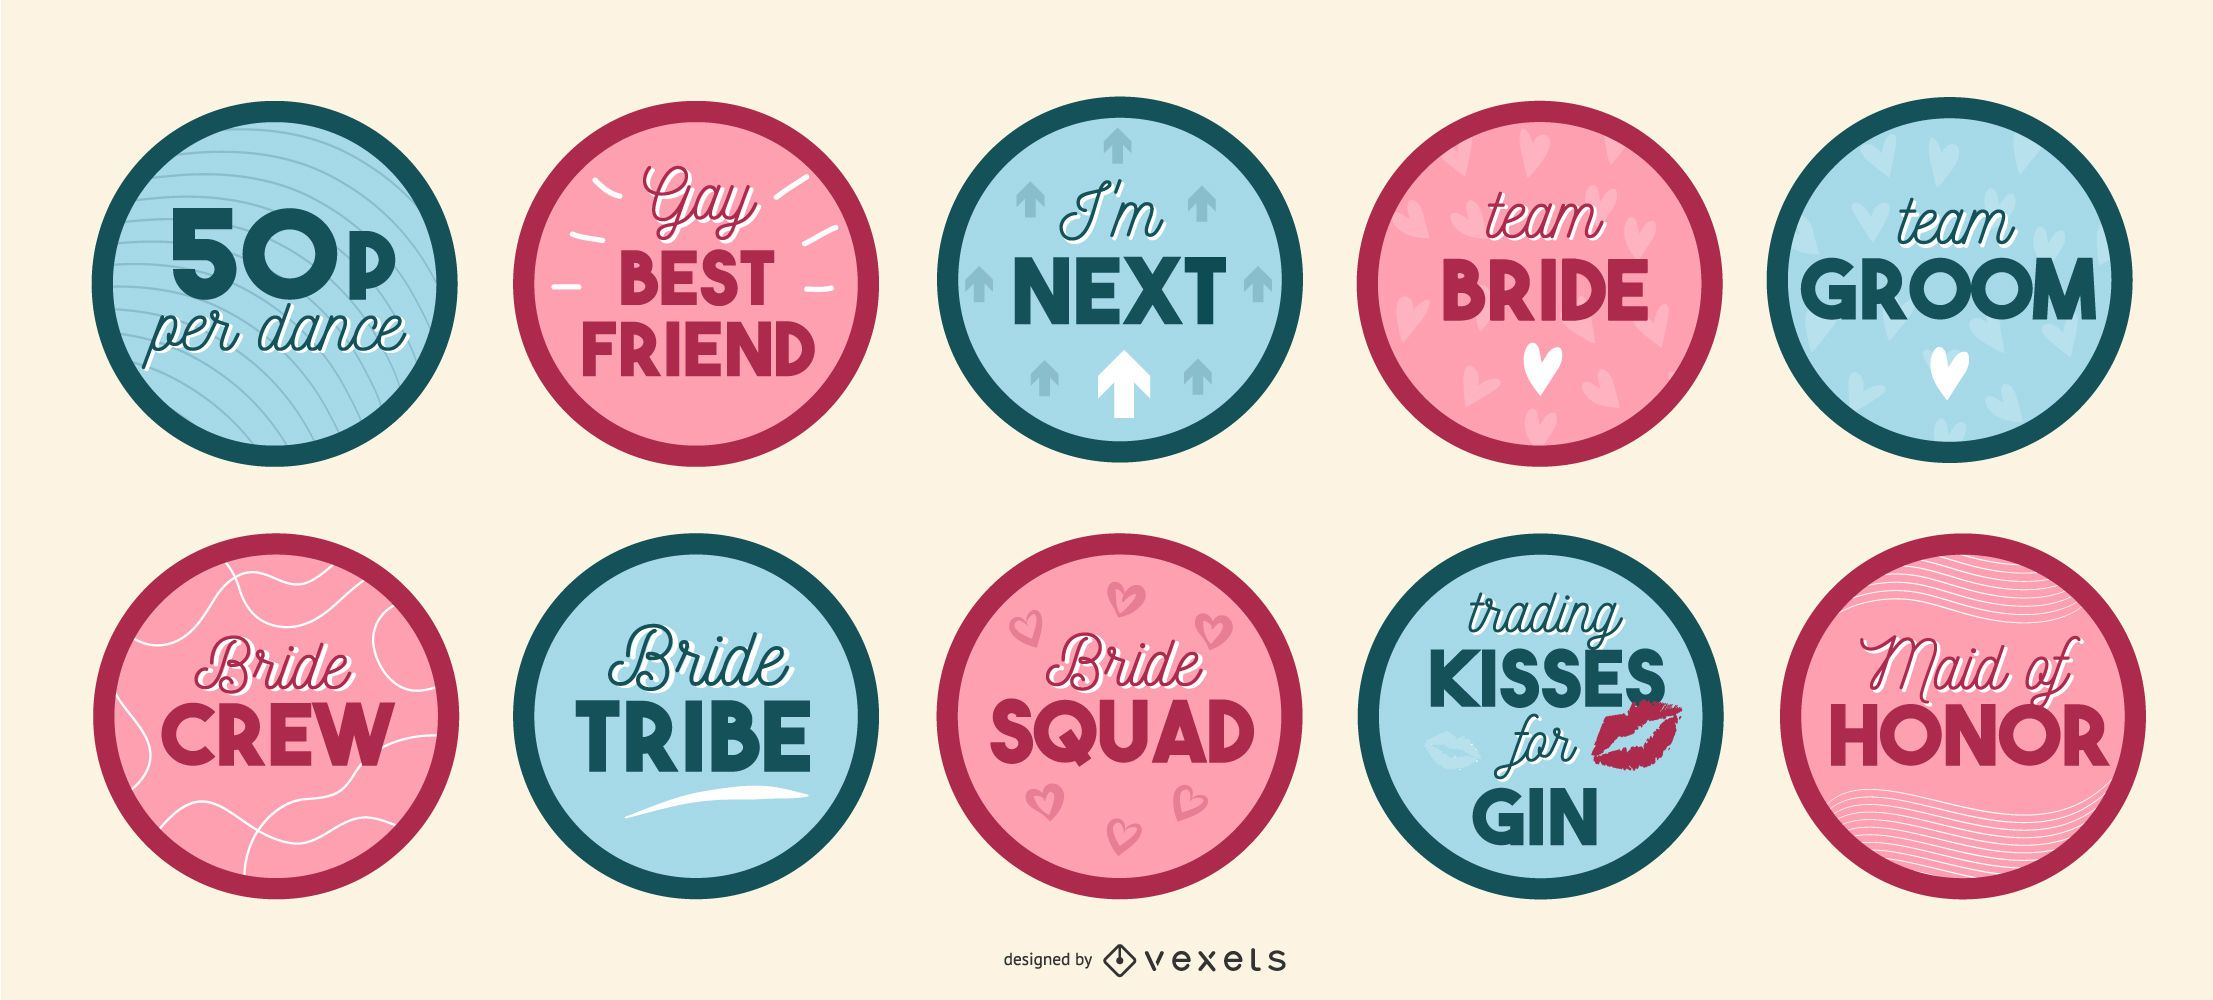 Bride popsockets collection